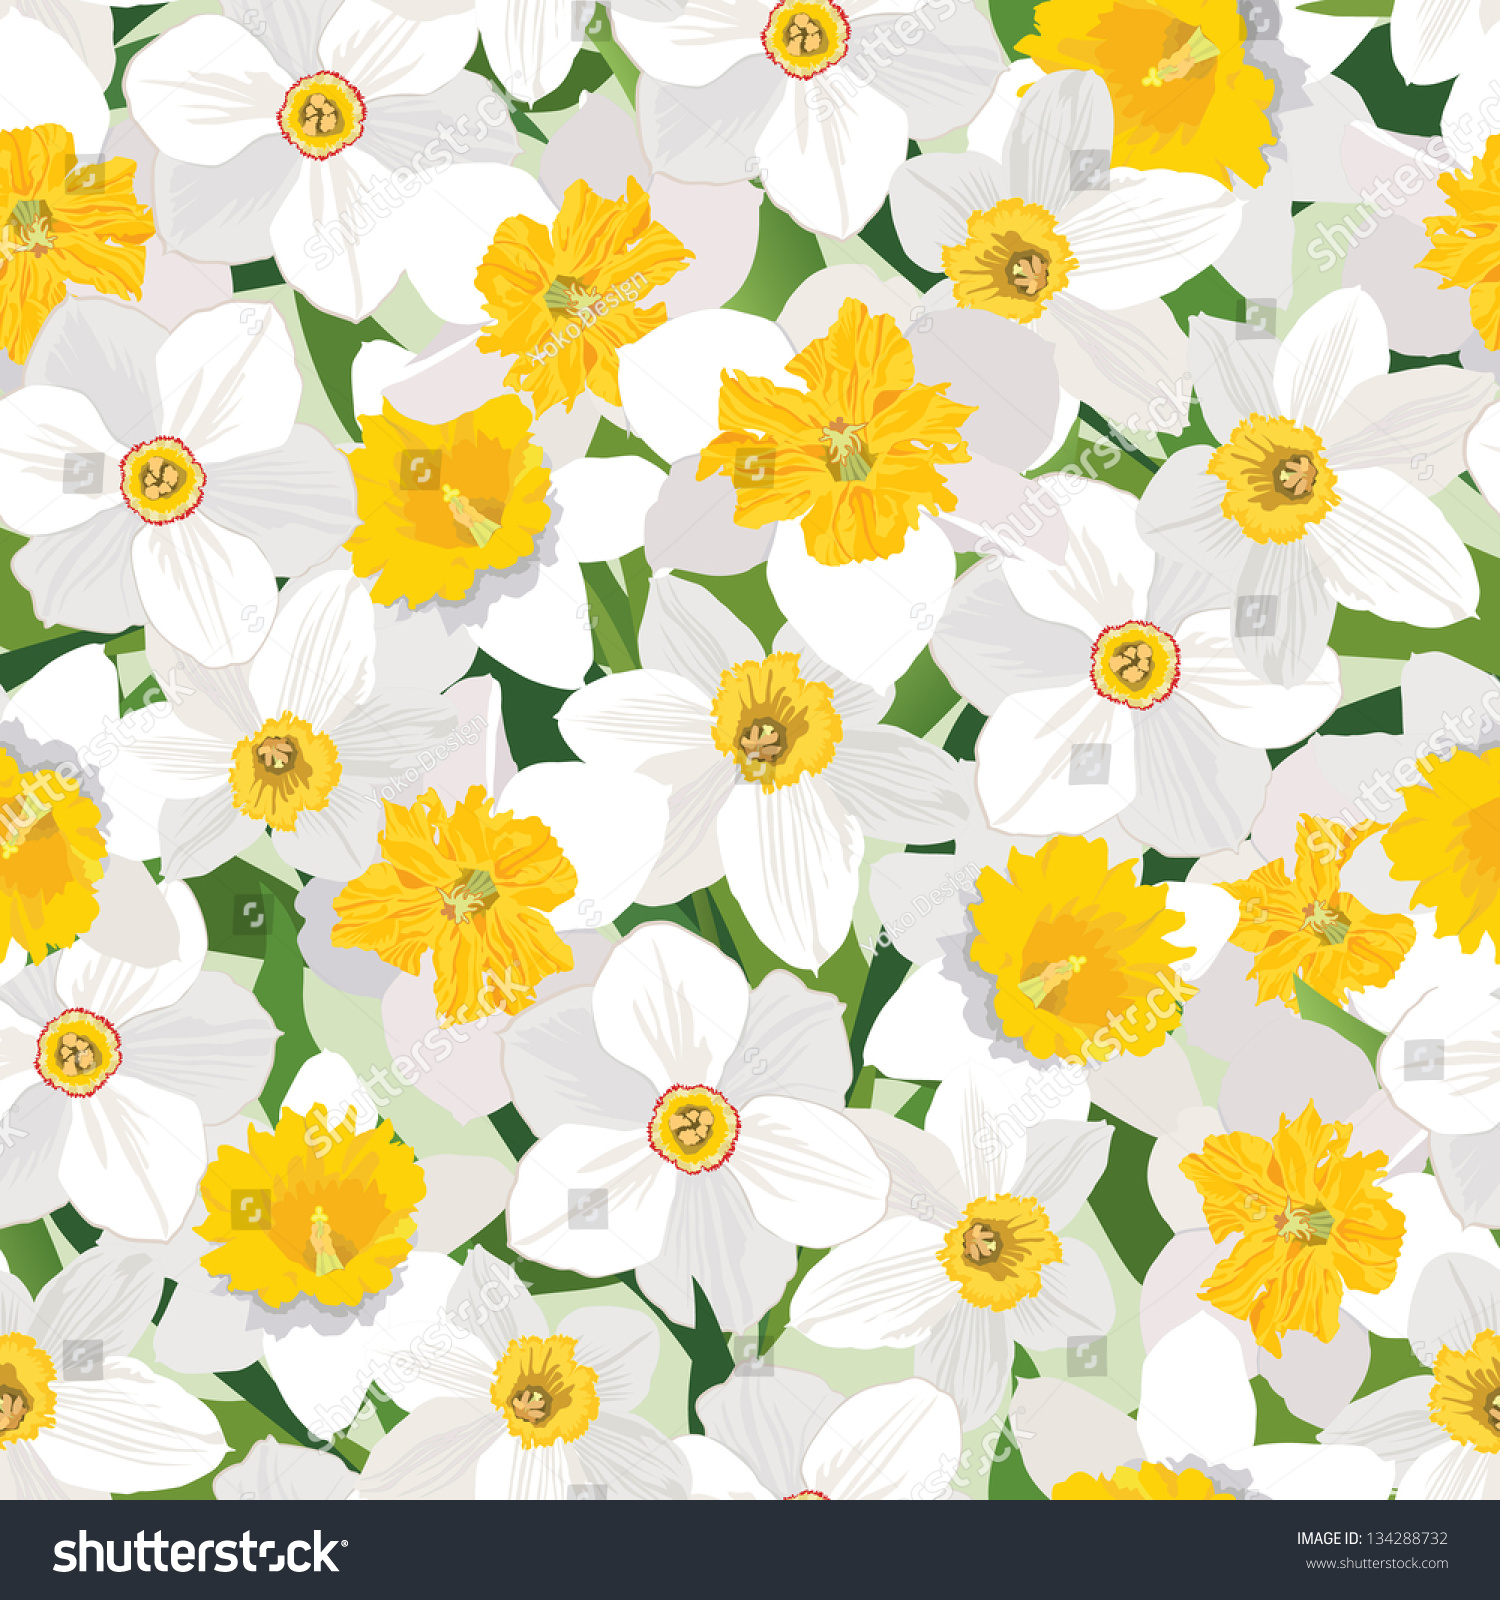 template of a daffodil - daffodil pattern the image kid has it